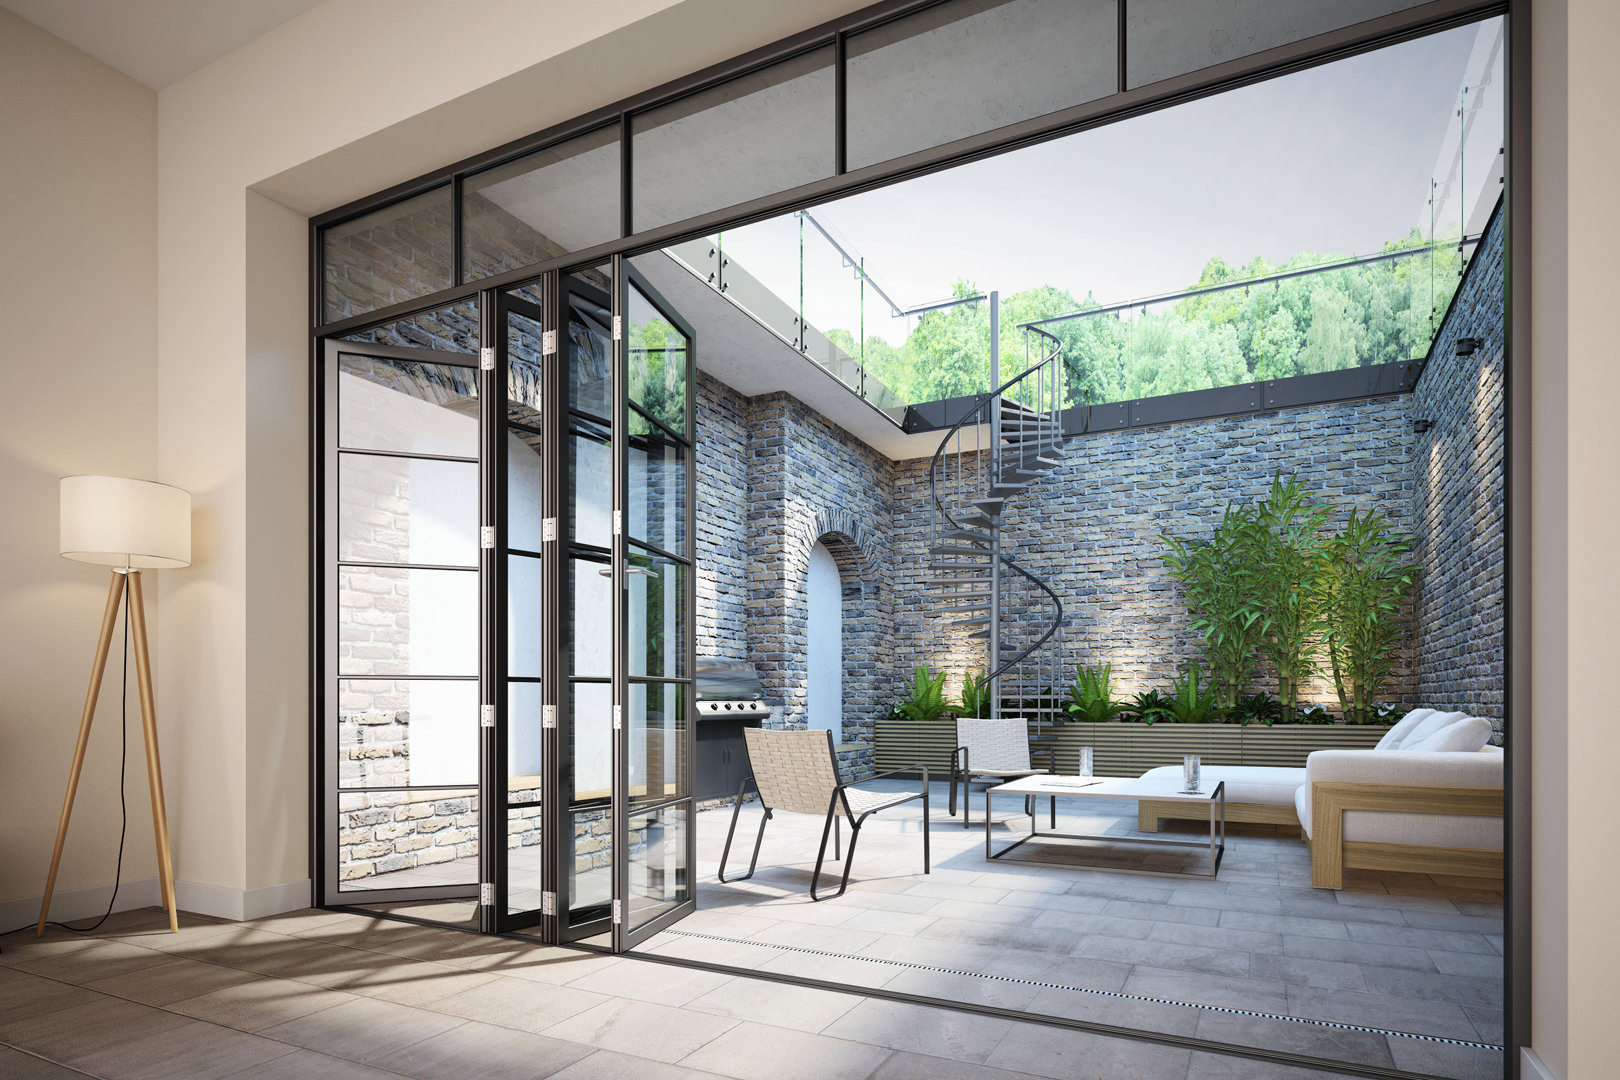 Chiswick Town House - A new 5/6 bedroom town house with sunken courtyards open out from a high specification kitchen and entertainment space in south west London (designed by M Doohan whilst at FCH Architects)